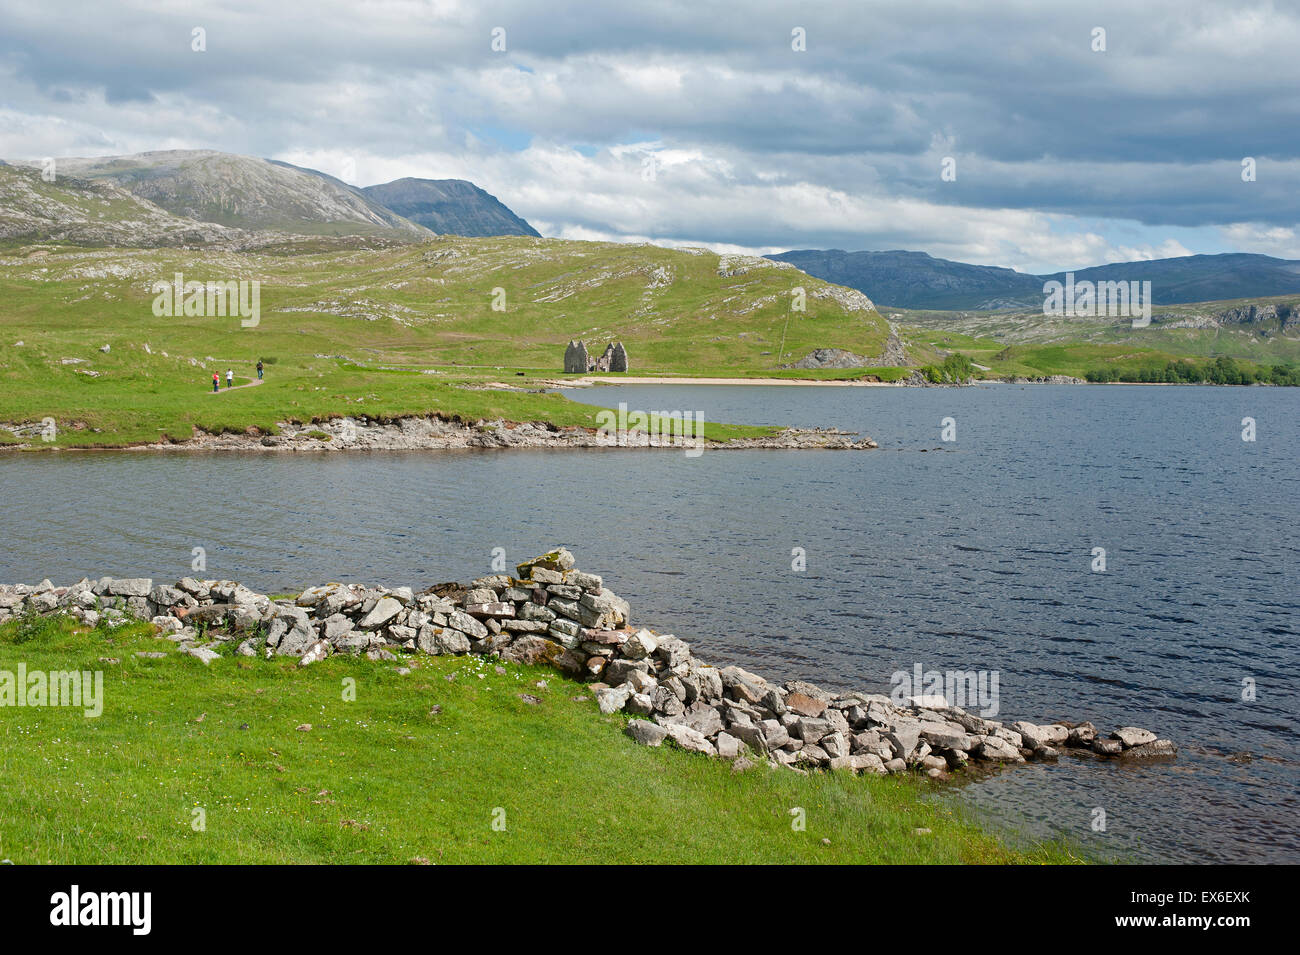 Inchnadamph mountains from the ruins of Ardvreck Castle on Loch Assynt in Sutherland.  SCO 9913. - Stock Image